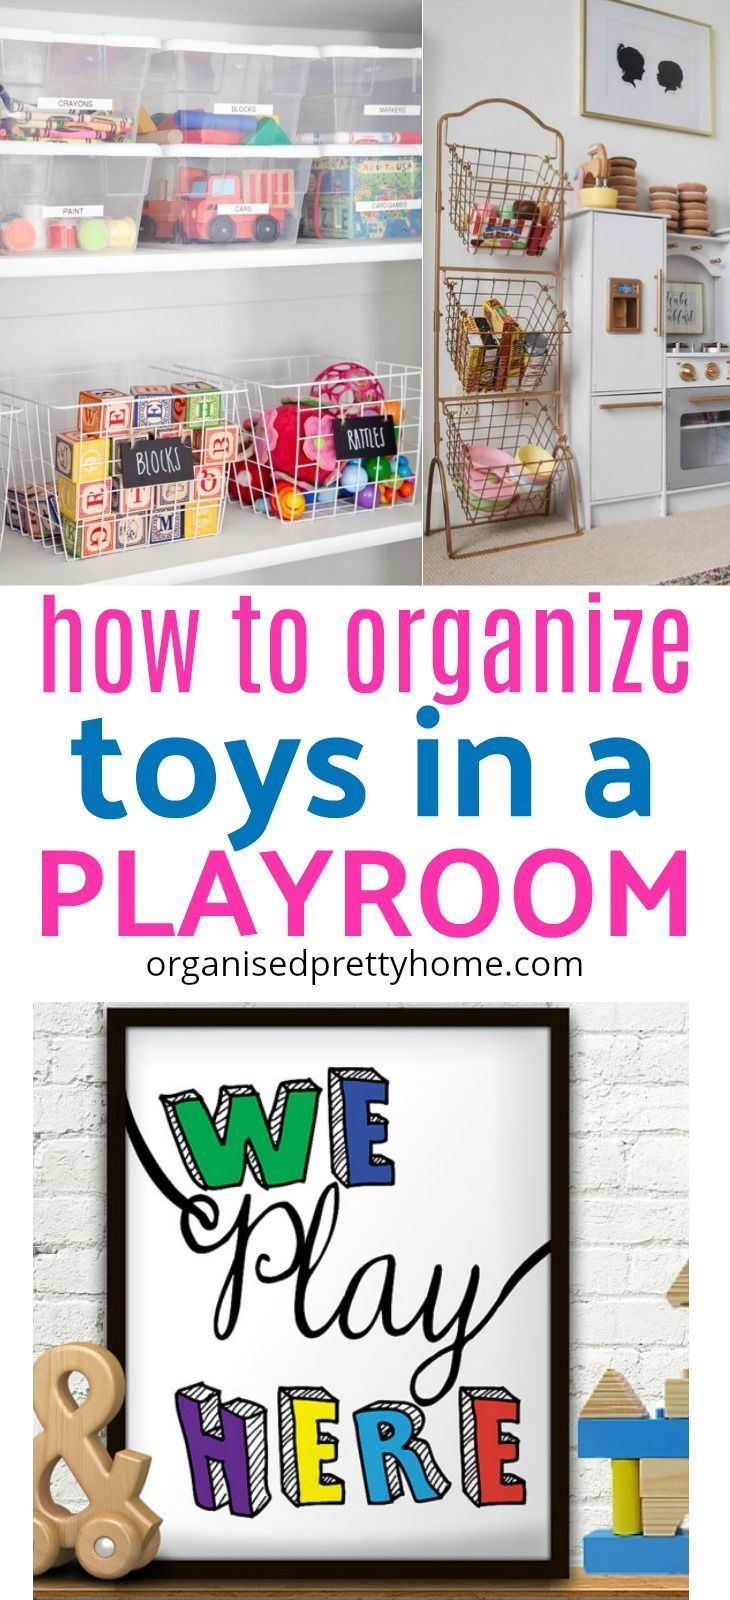 10 Types Of Toy Organizers For Kids Bedrooms And Playrooms: Best 25+ Kids Room Shelves Ideas On Pinterest